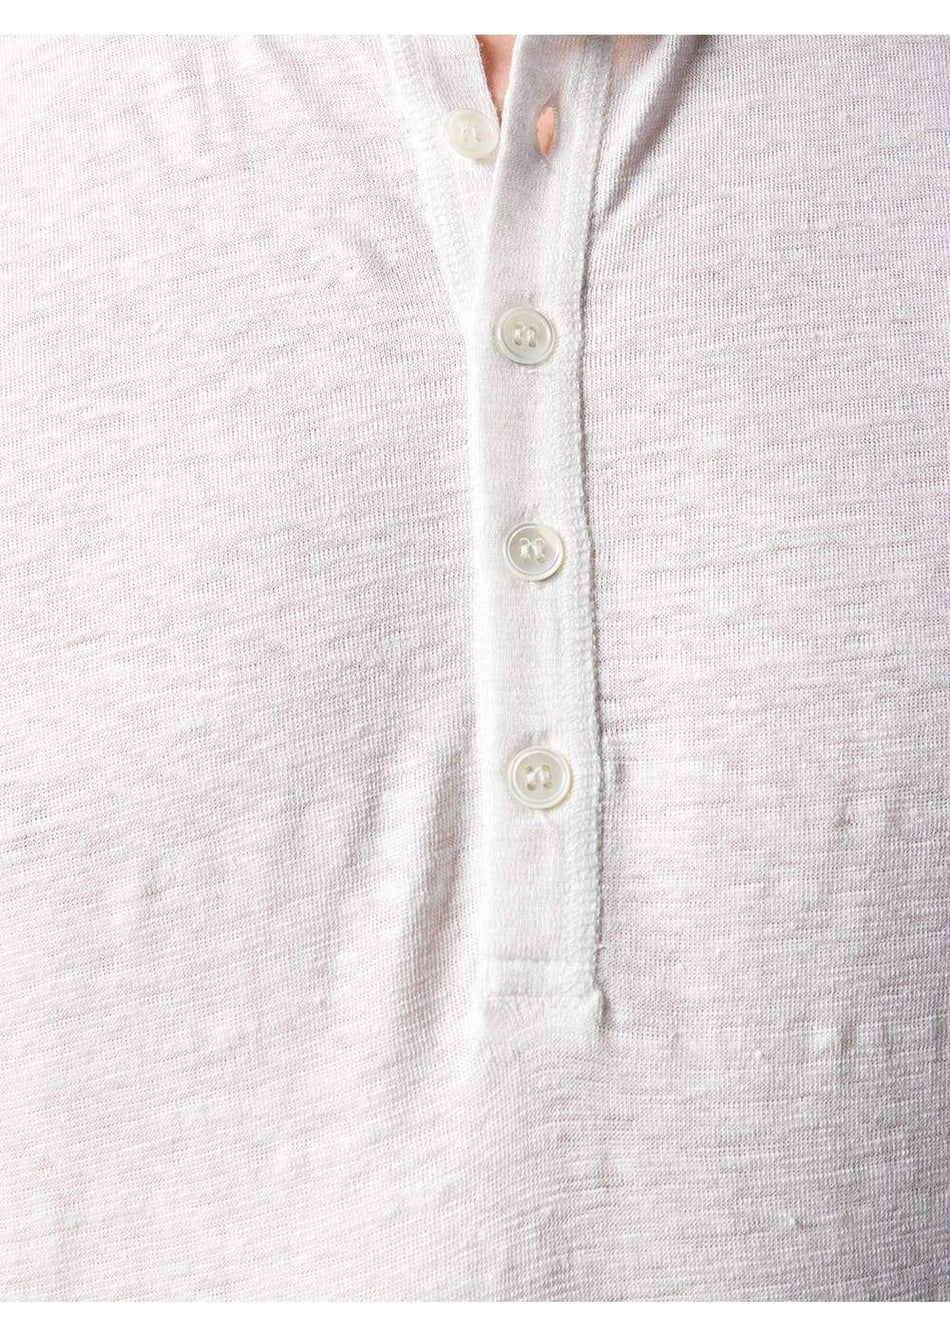 t-shirt henley MAJESTIC FILATURES - Vittorio Citro Boutique